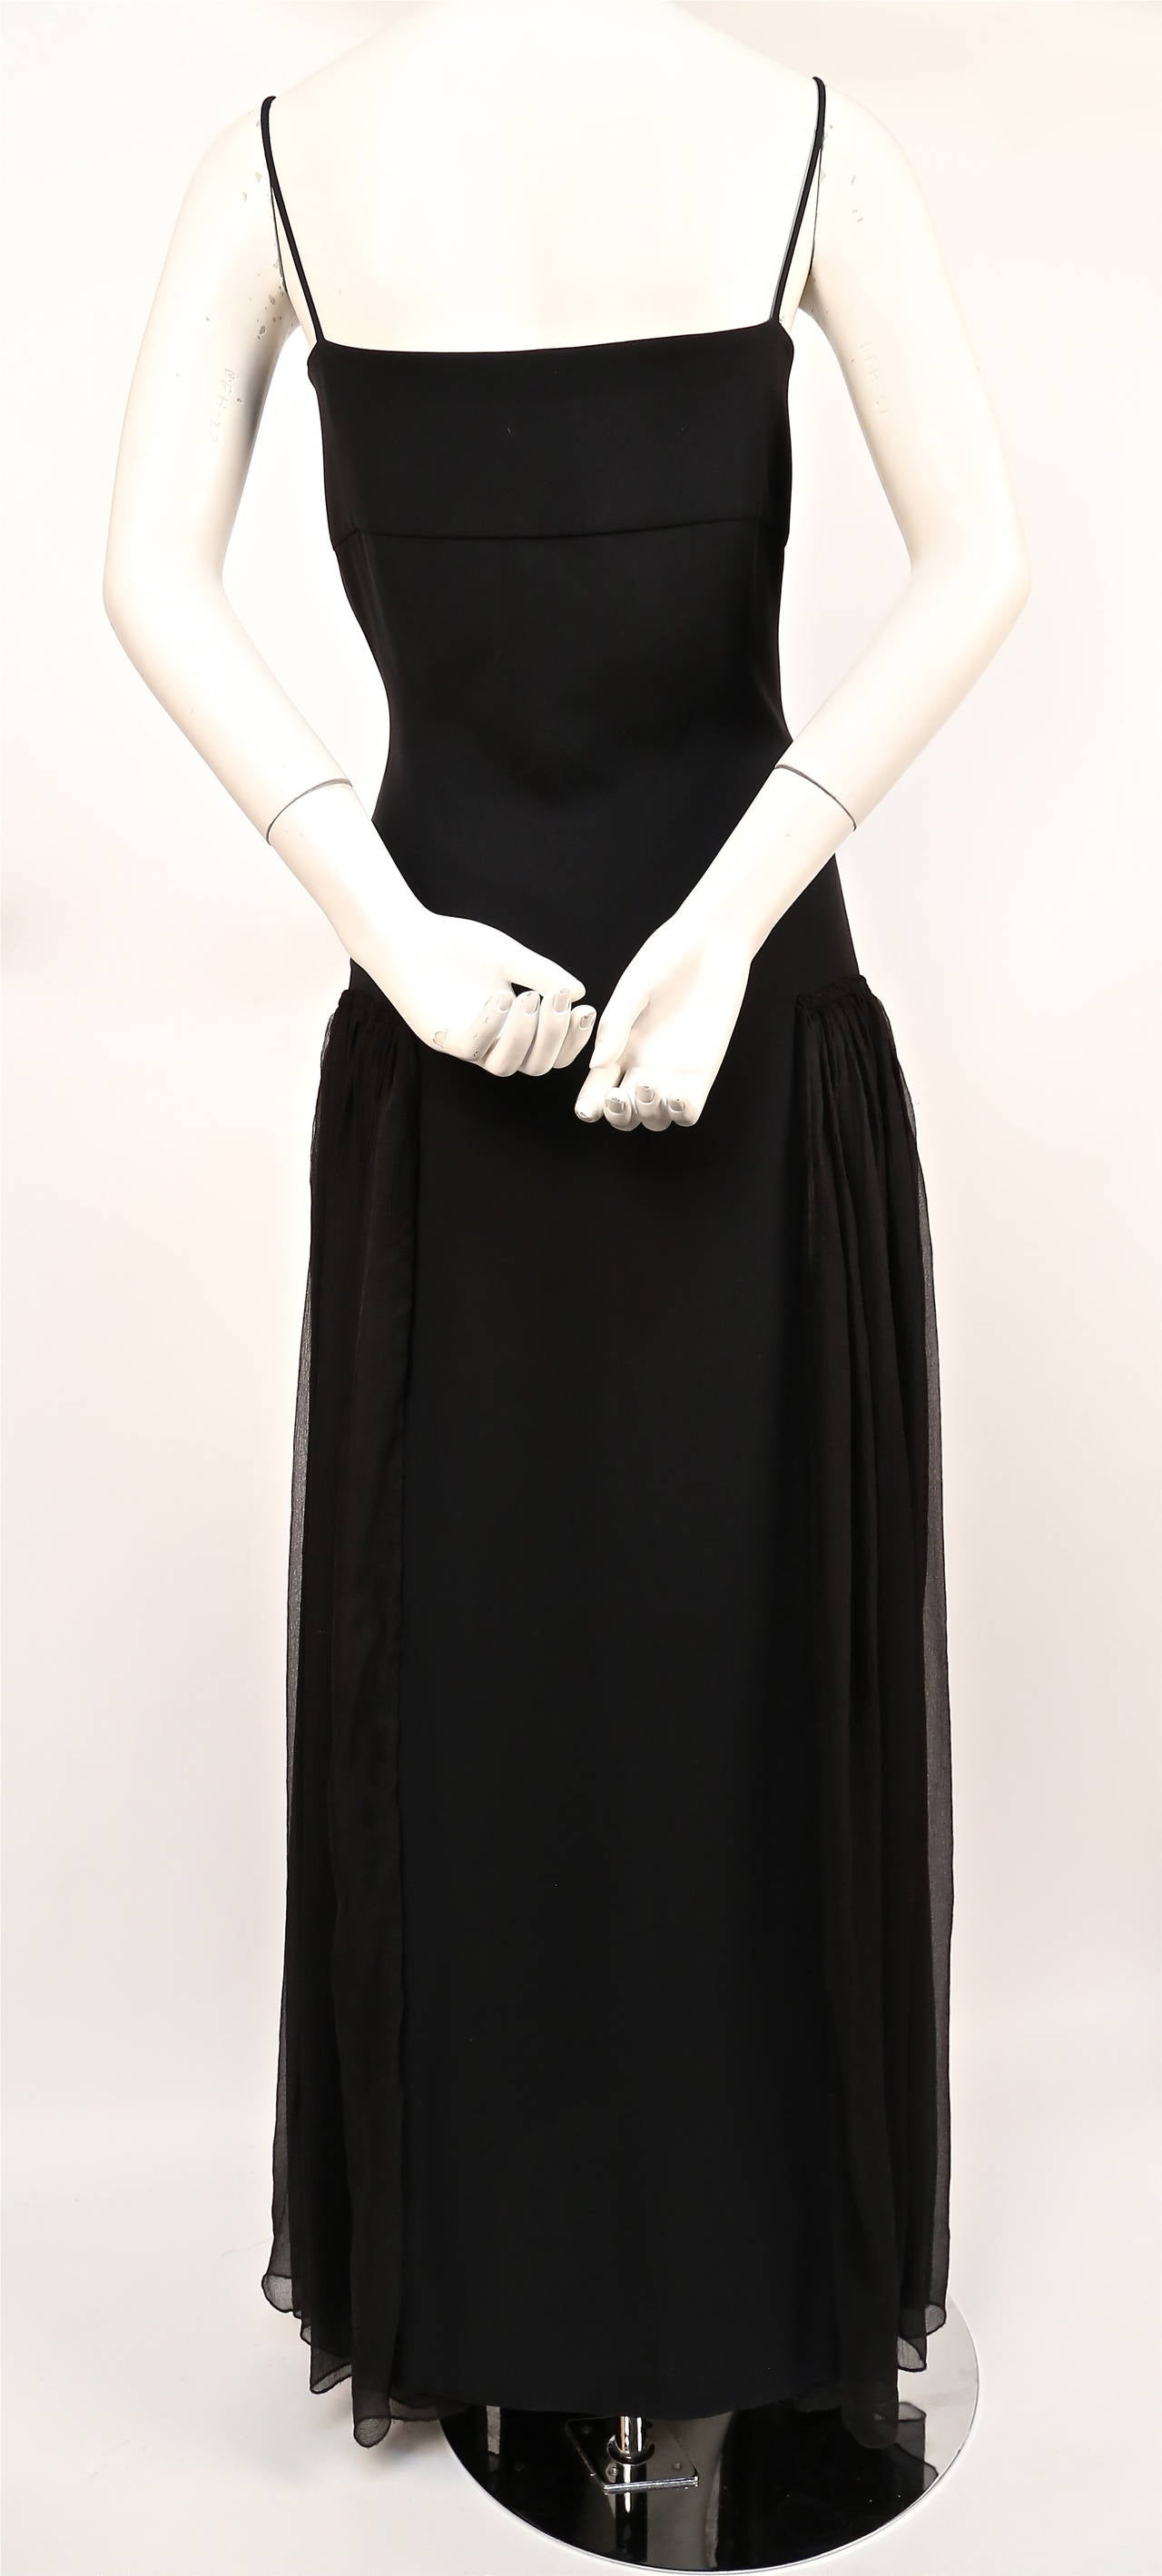 1998 BALENCIAGA 'le dix' by Nicolas Ghesquière black gown with sheer panels 3